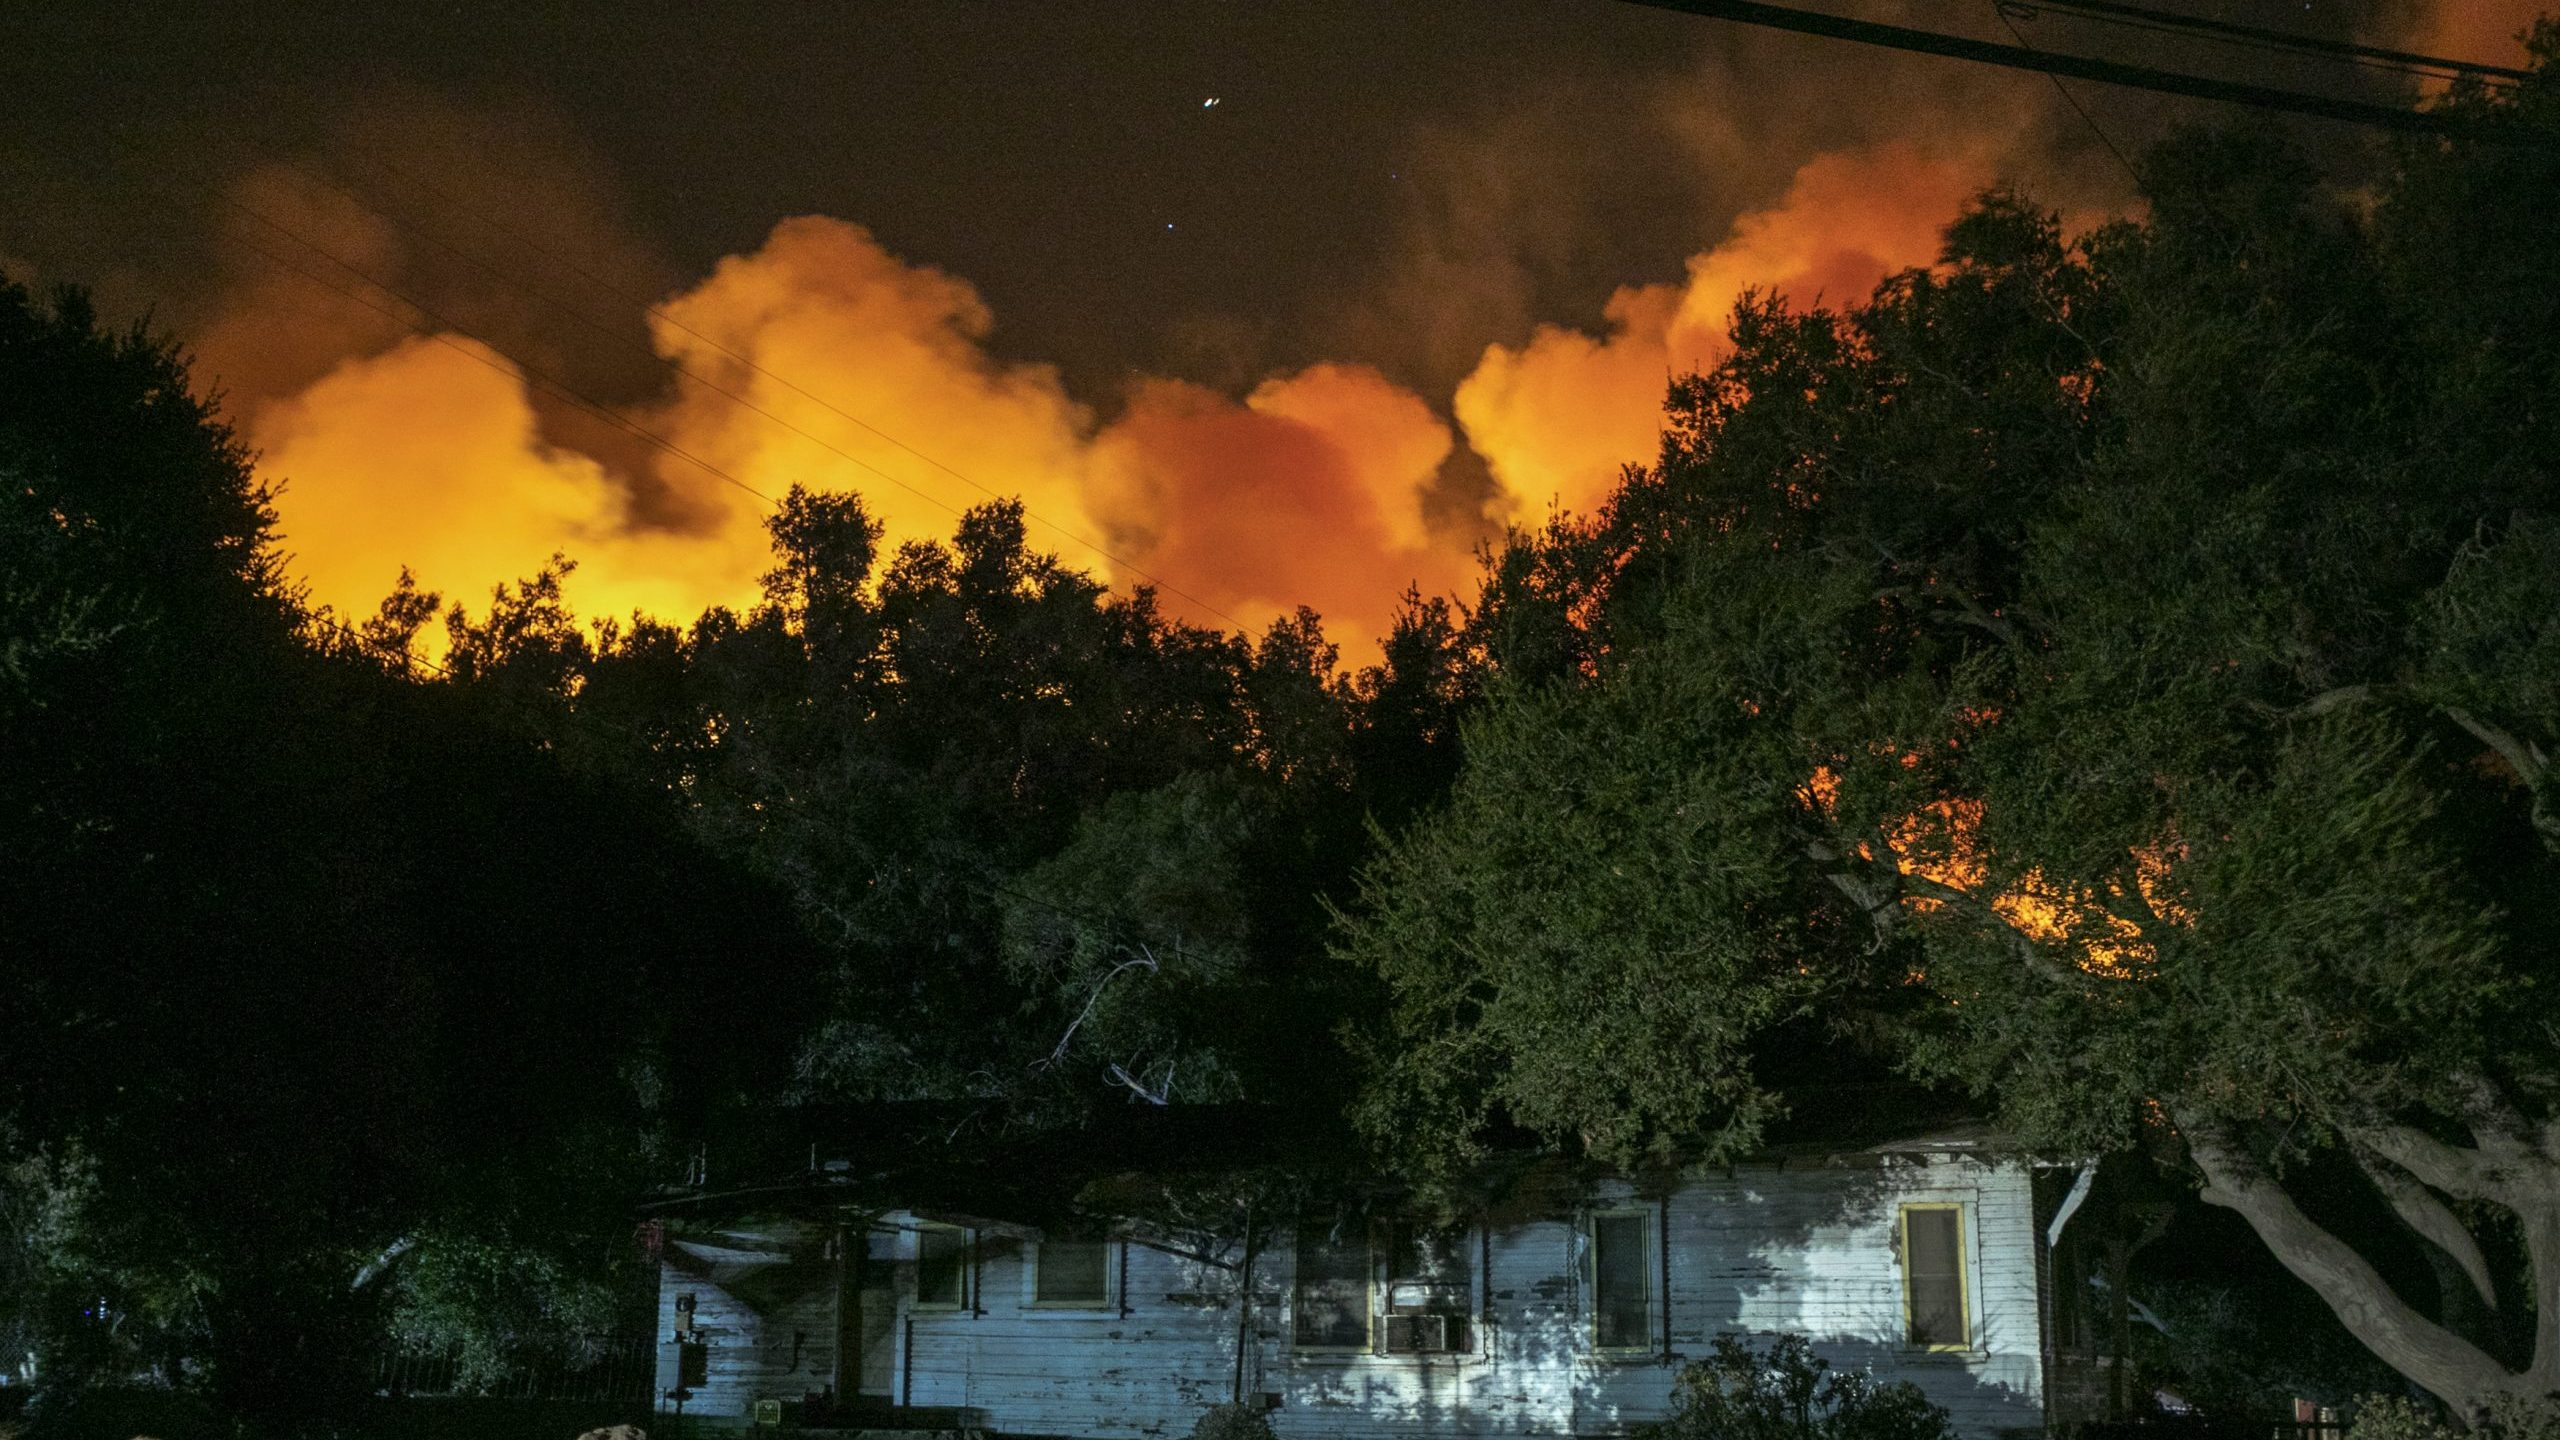 The Maria Fire threatens a home near Somis on Nov. 1, 2019. (Credit: David McNew/Getty Images)